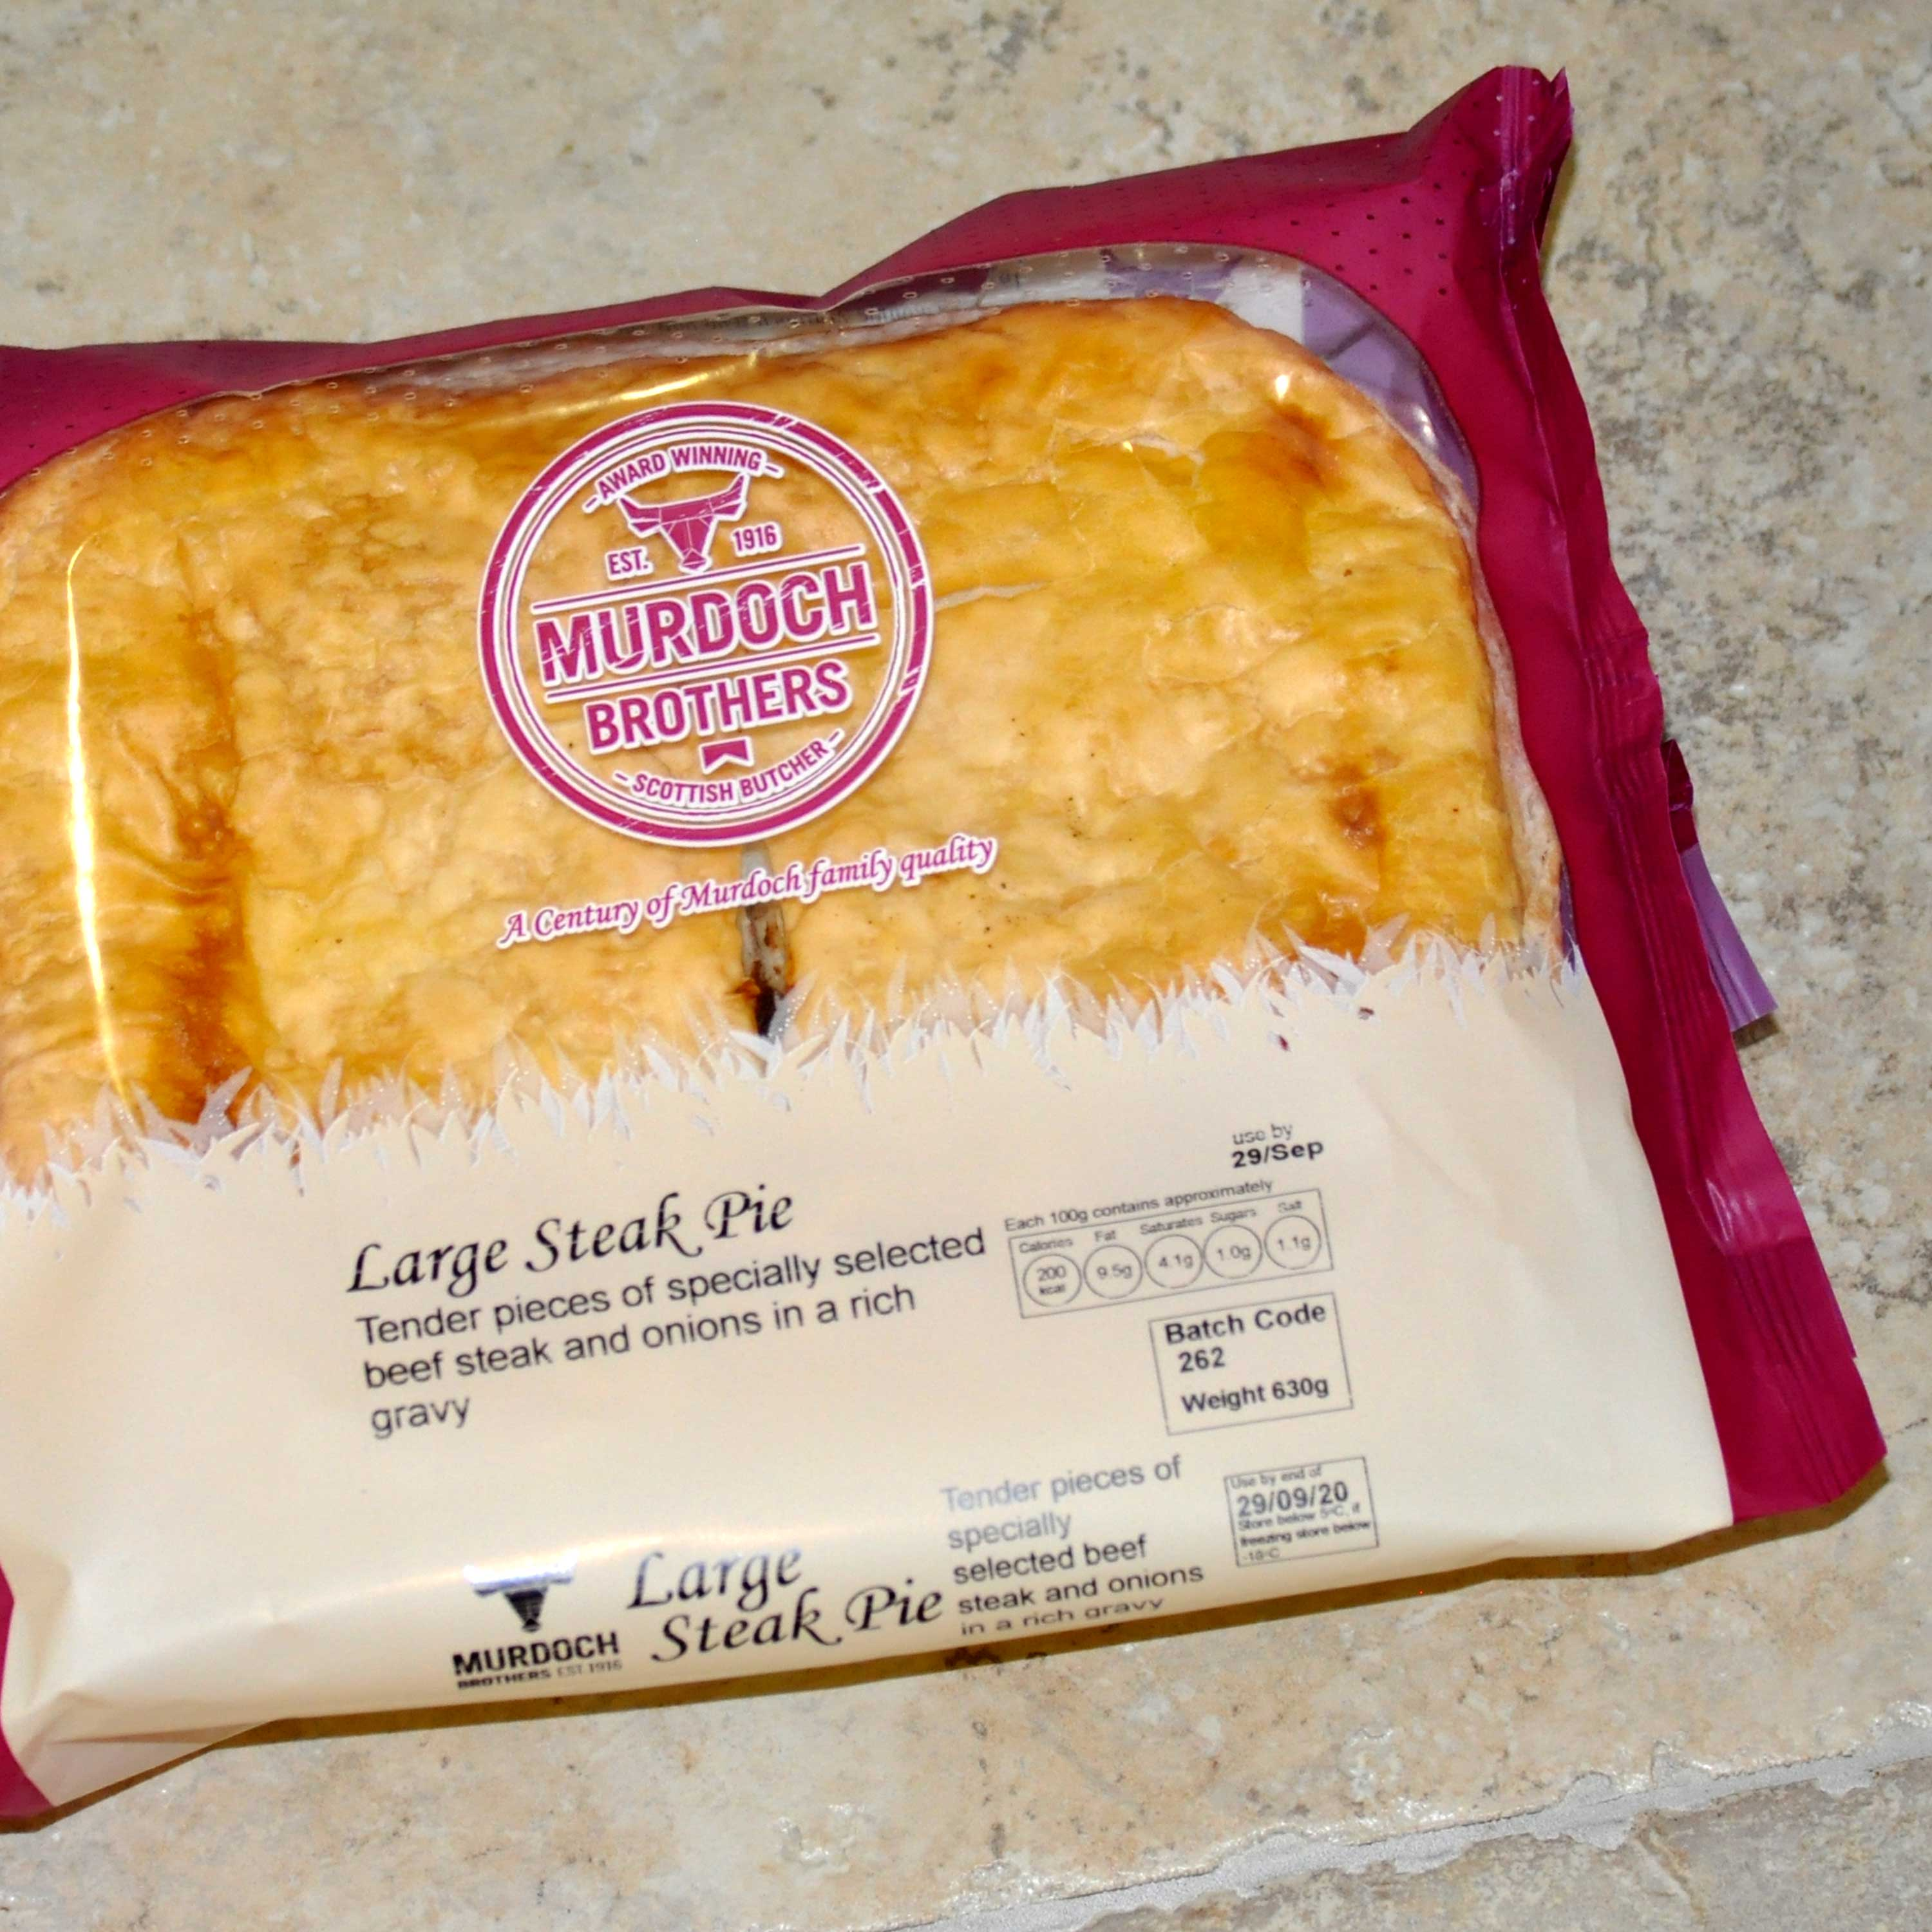 Large-Steak-Pie-Packaged